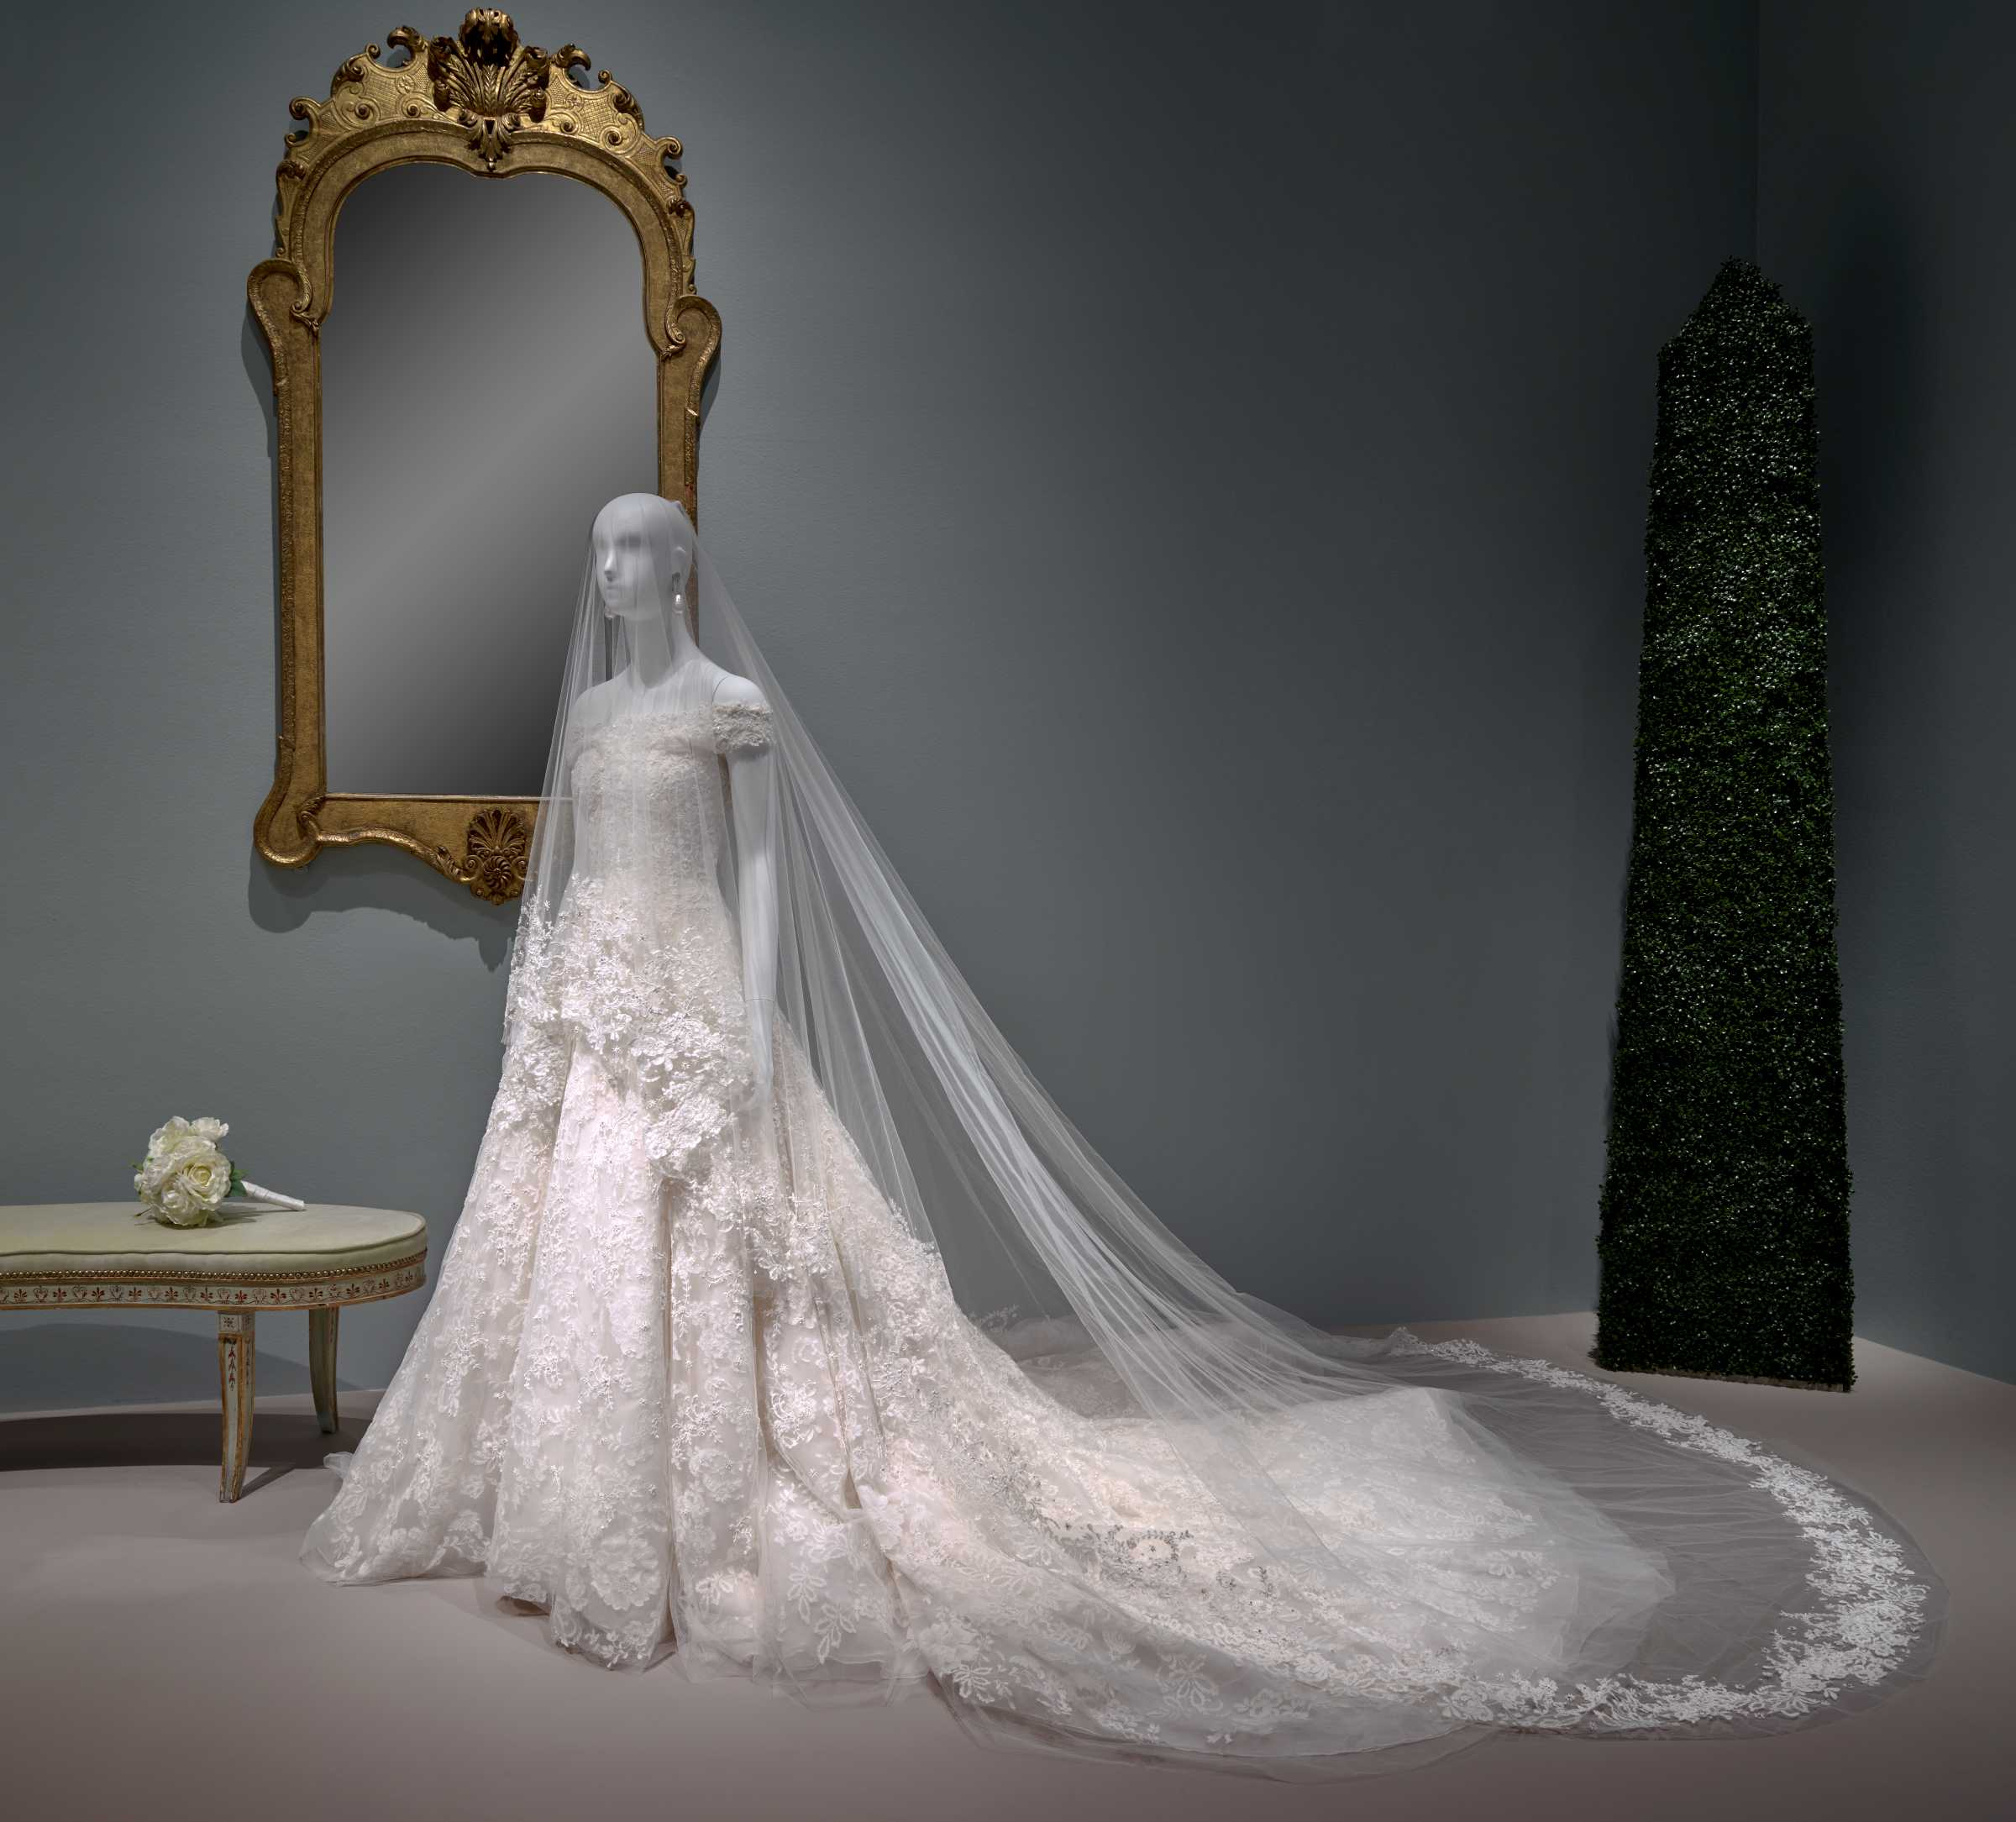 Amal Clooney's wedding dress